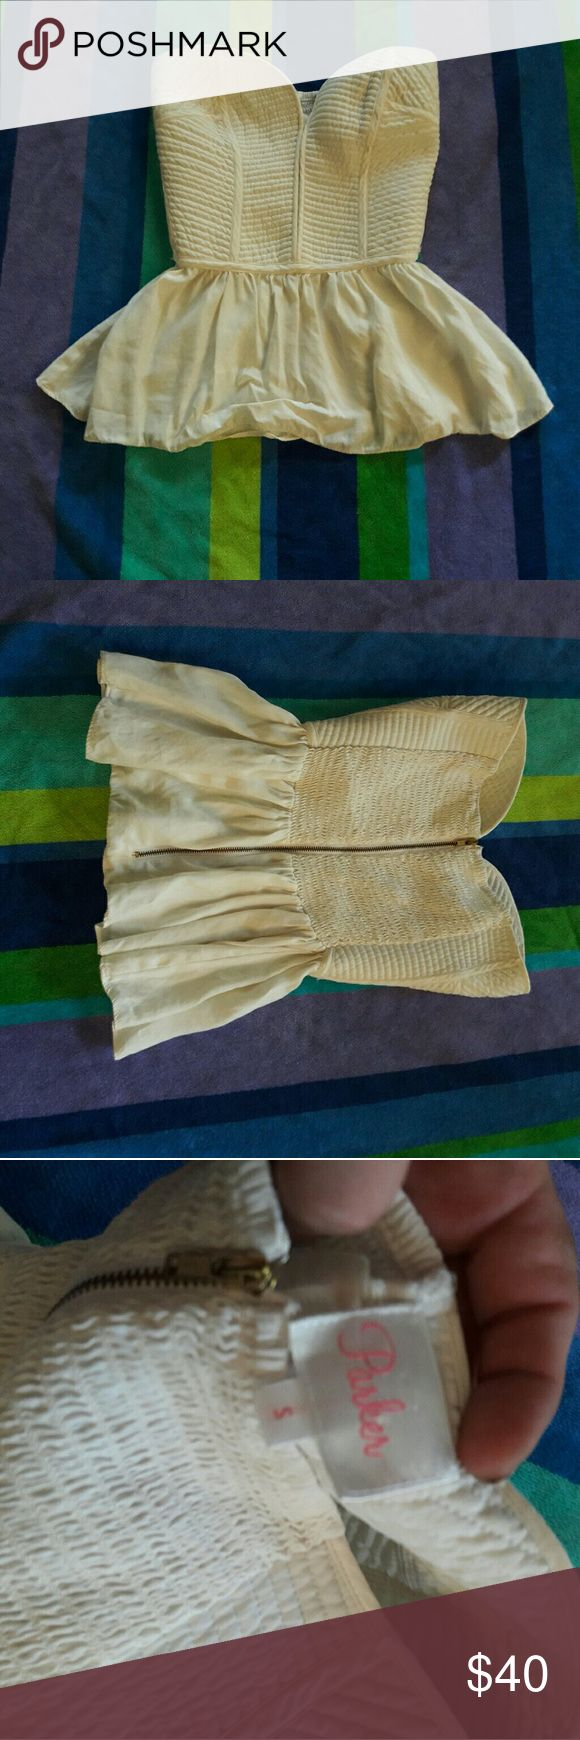 Cream parker corset top strapless Like new cream parker strapless corset top.  Like new. Parker Tops Blouses